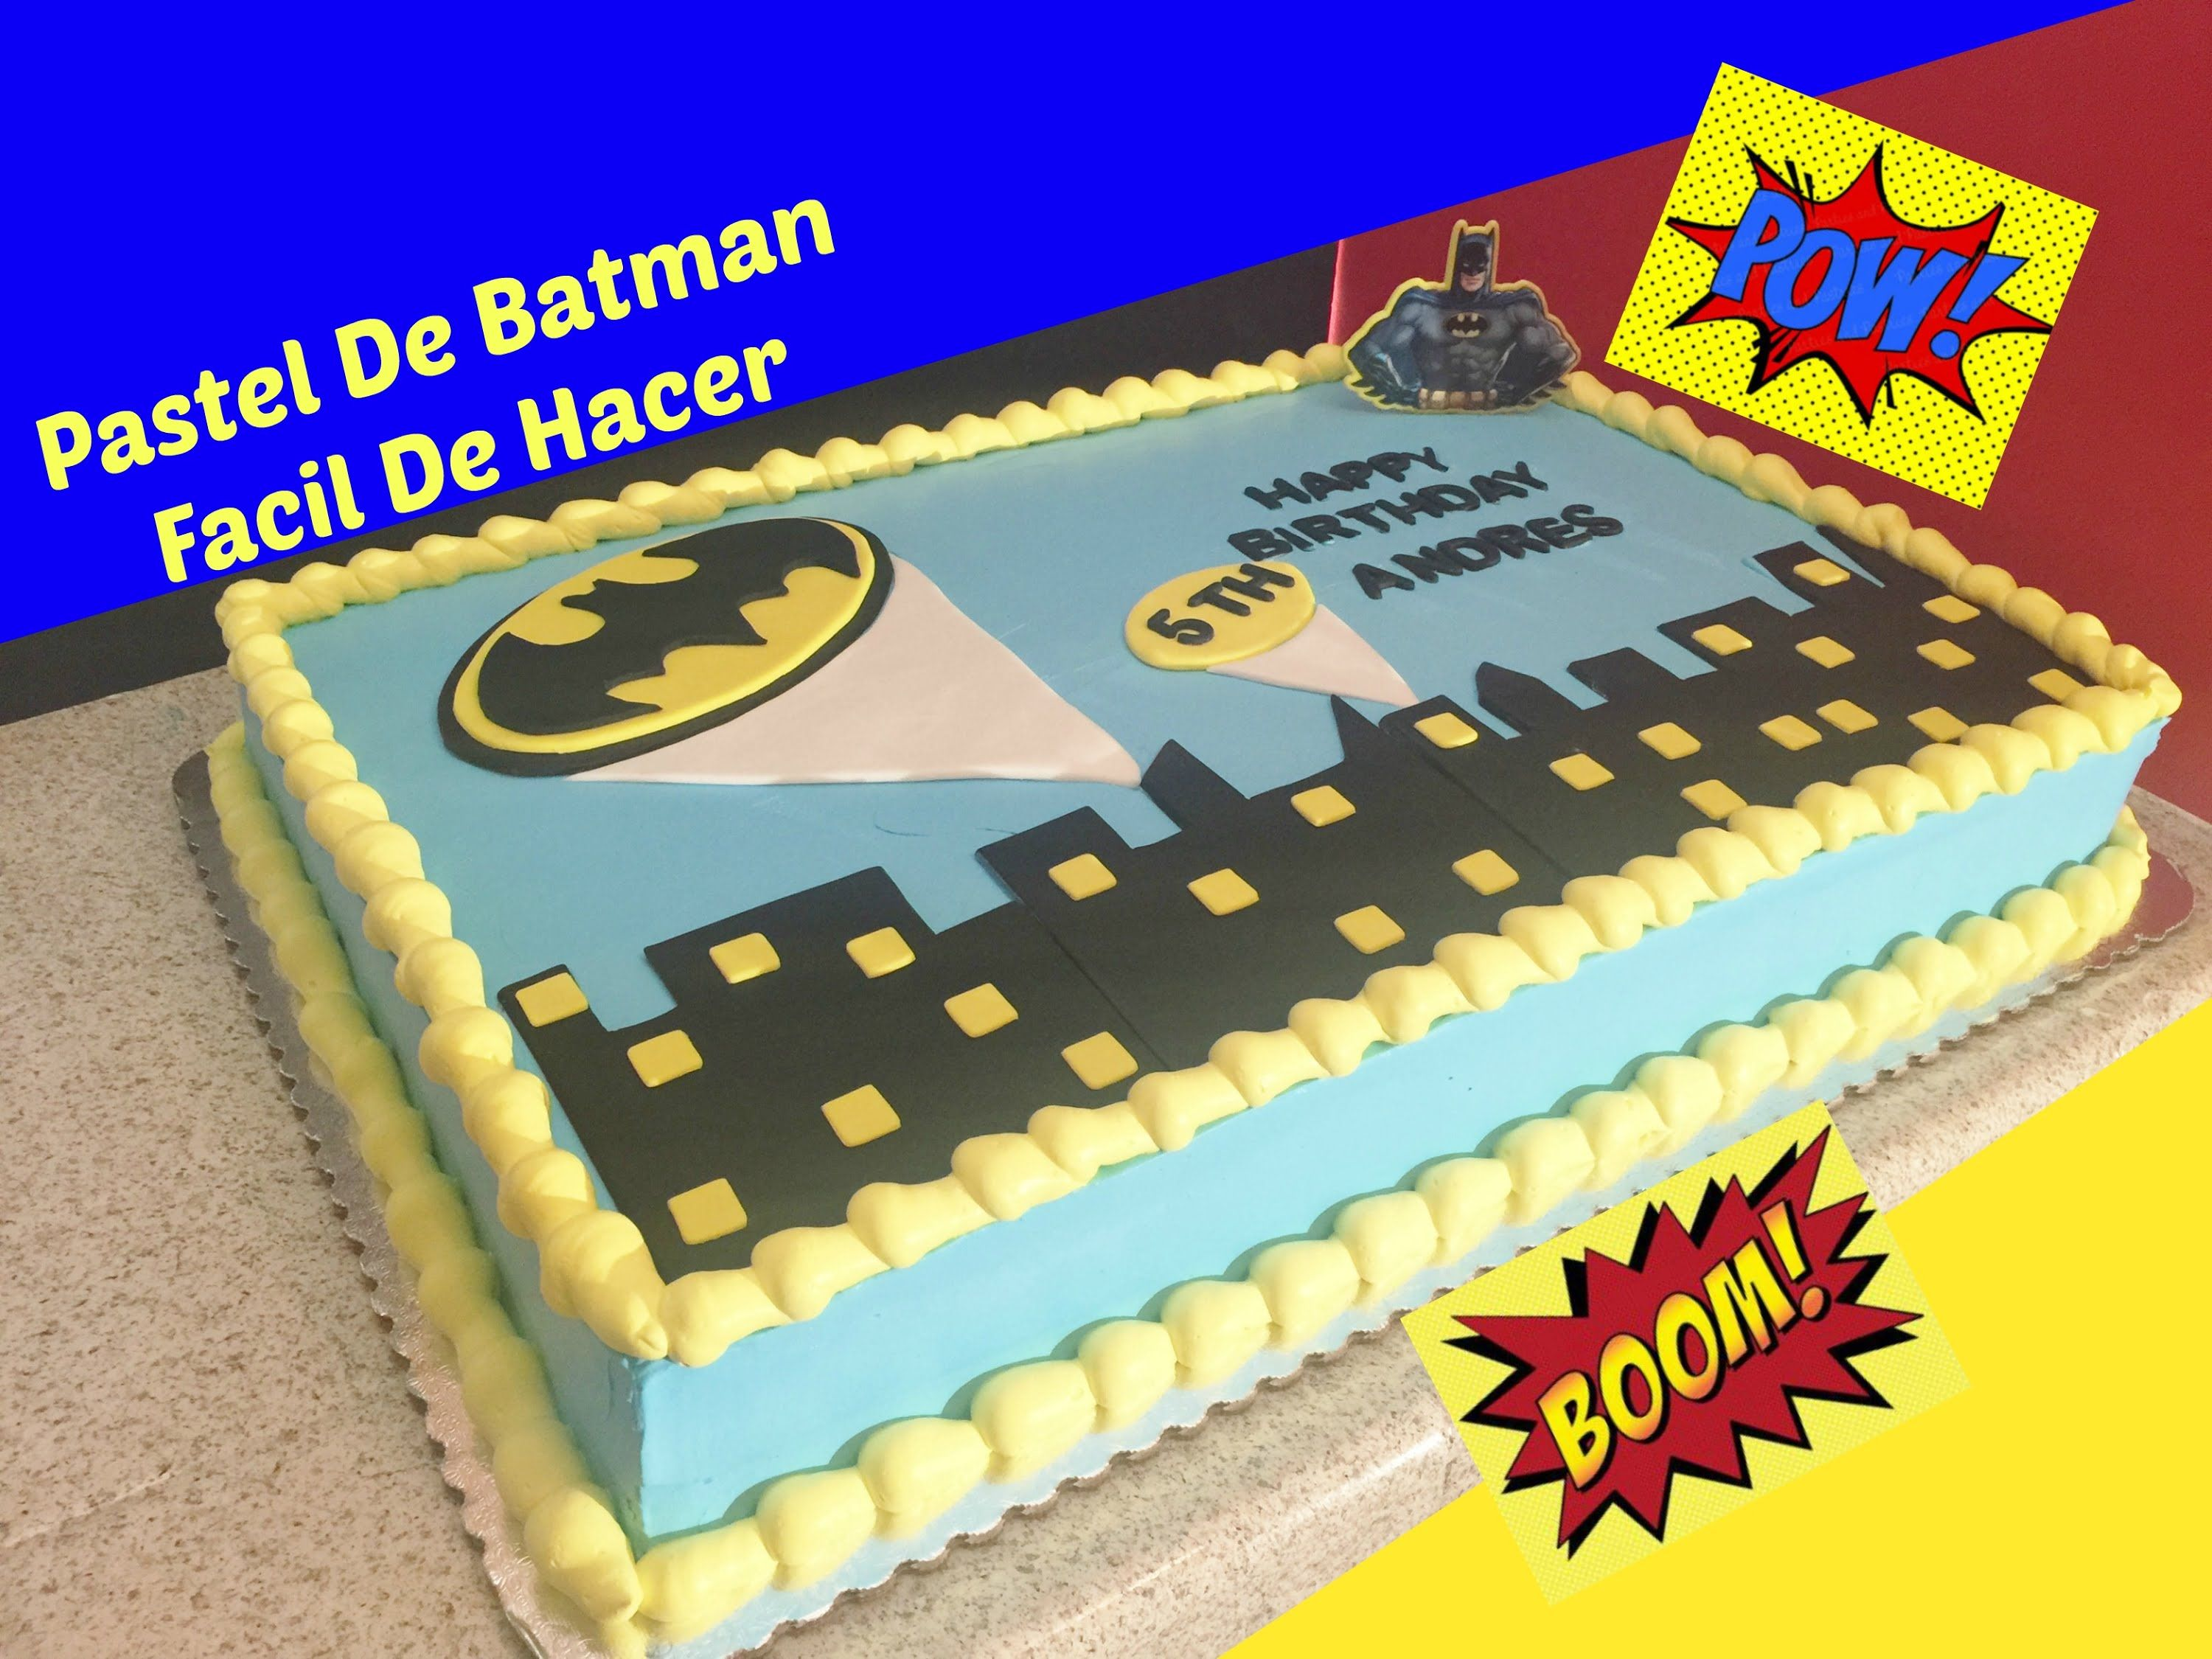 Como Decorar Un Pastel De Batman Facil cakefondant video